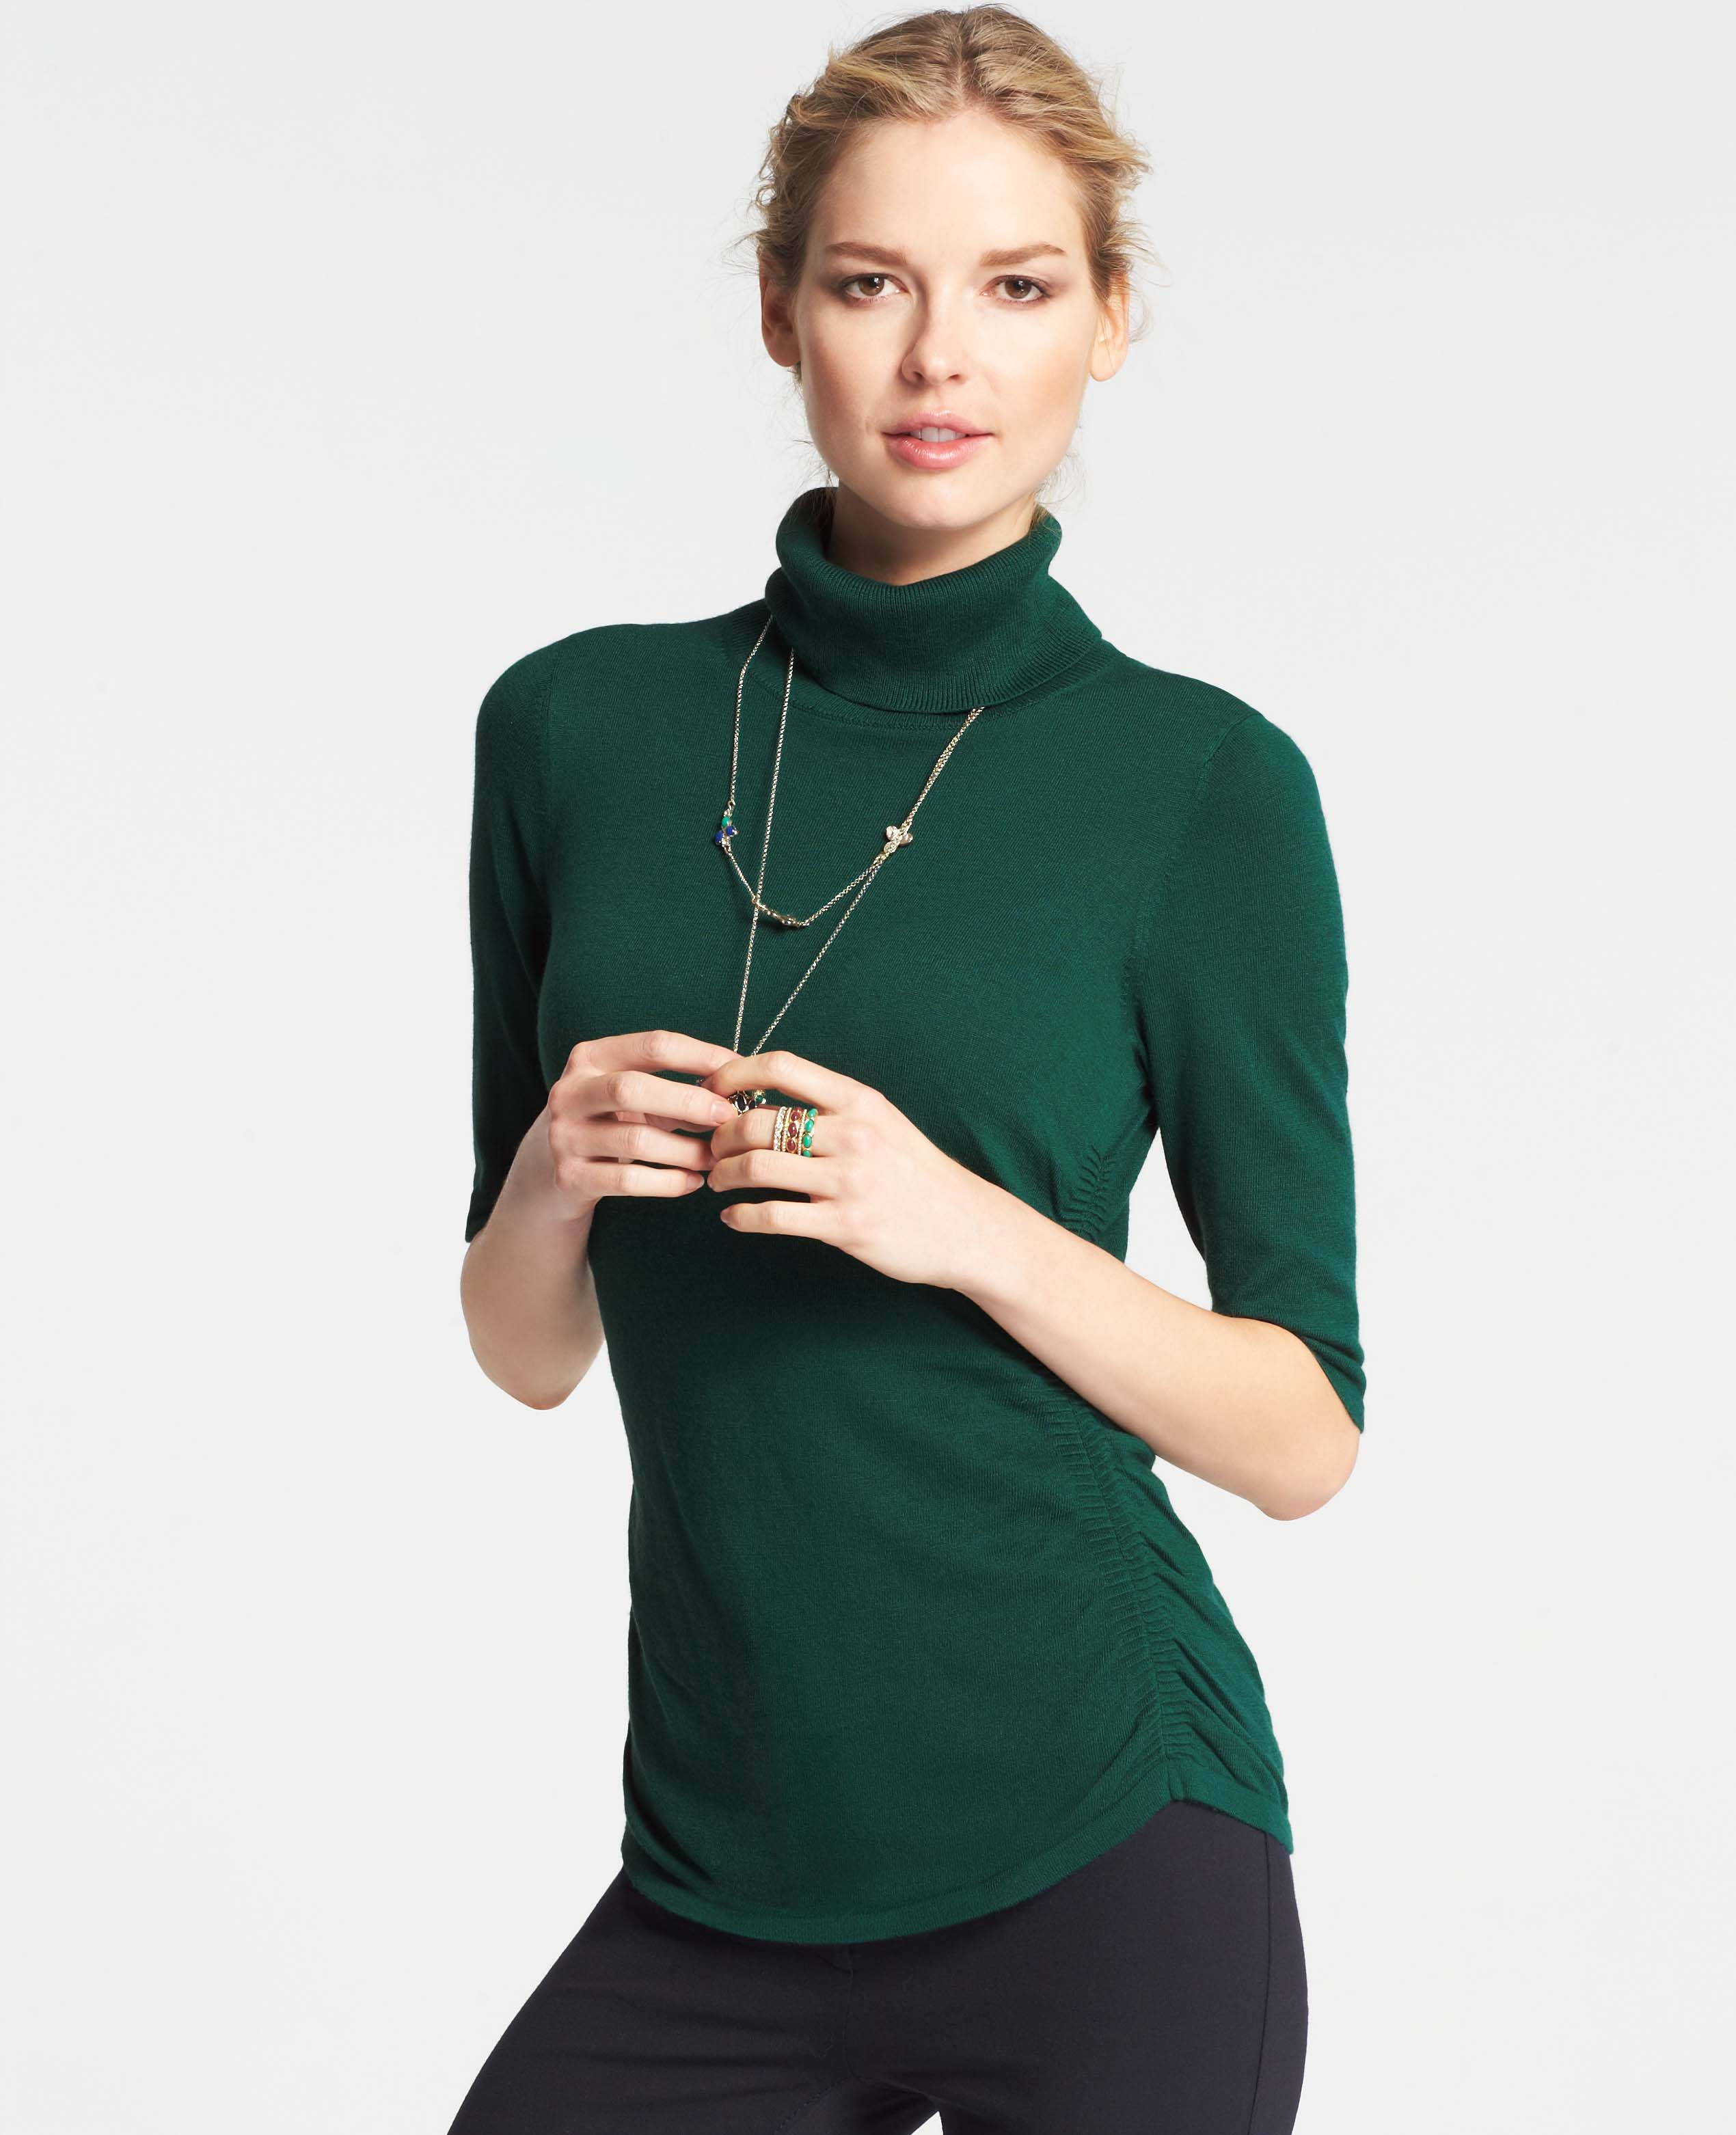 Ann taylor Ruched Short Sleeve Turtleneck Sweater in Green | Lyst